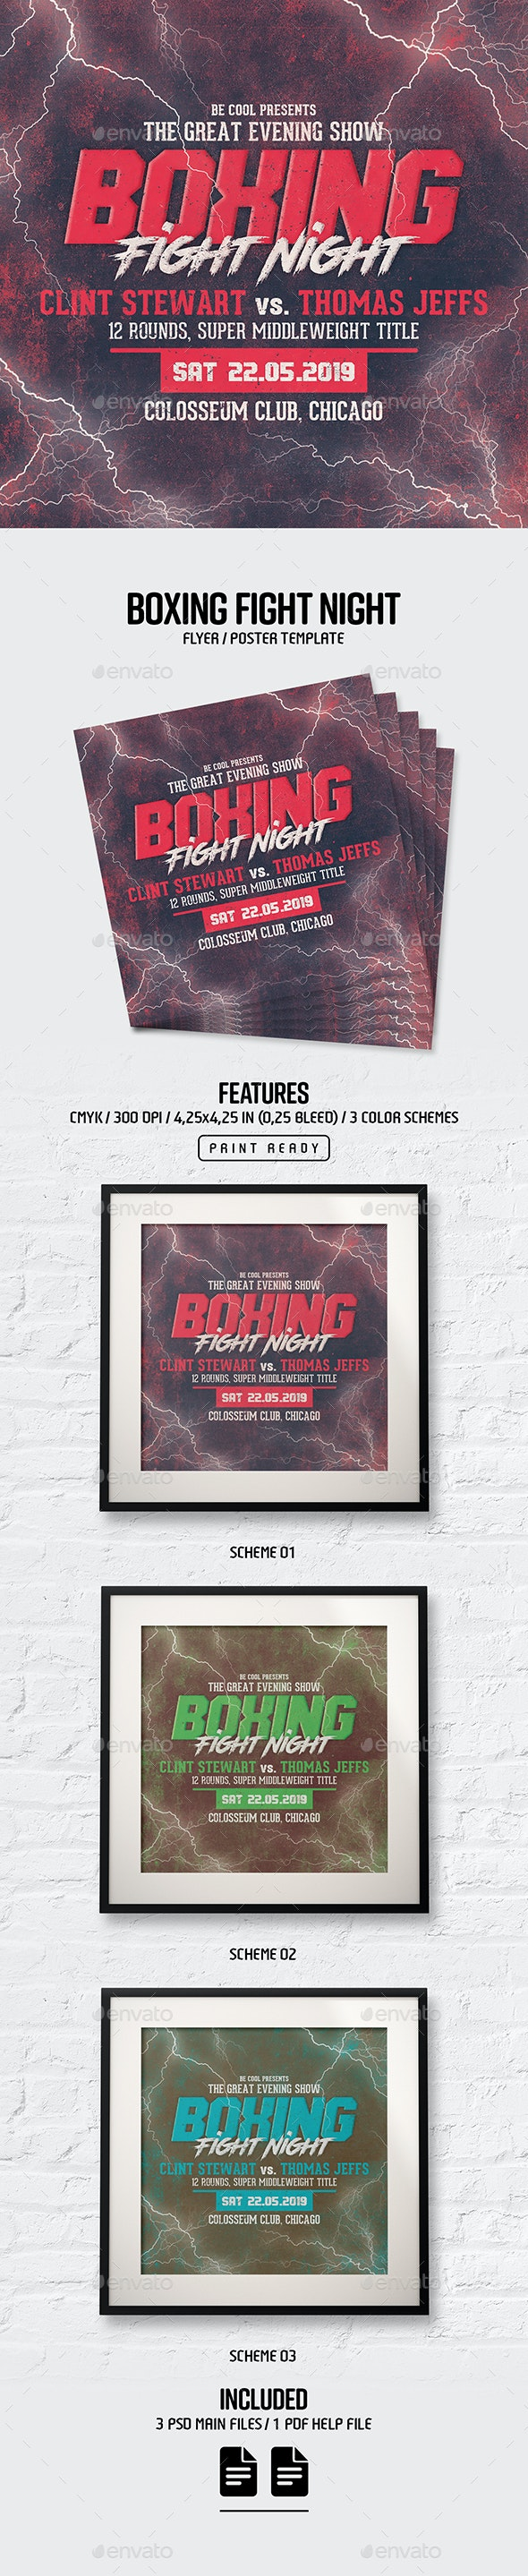 Boxing Flyer/Poster - Sports Events